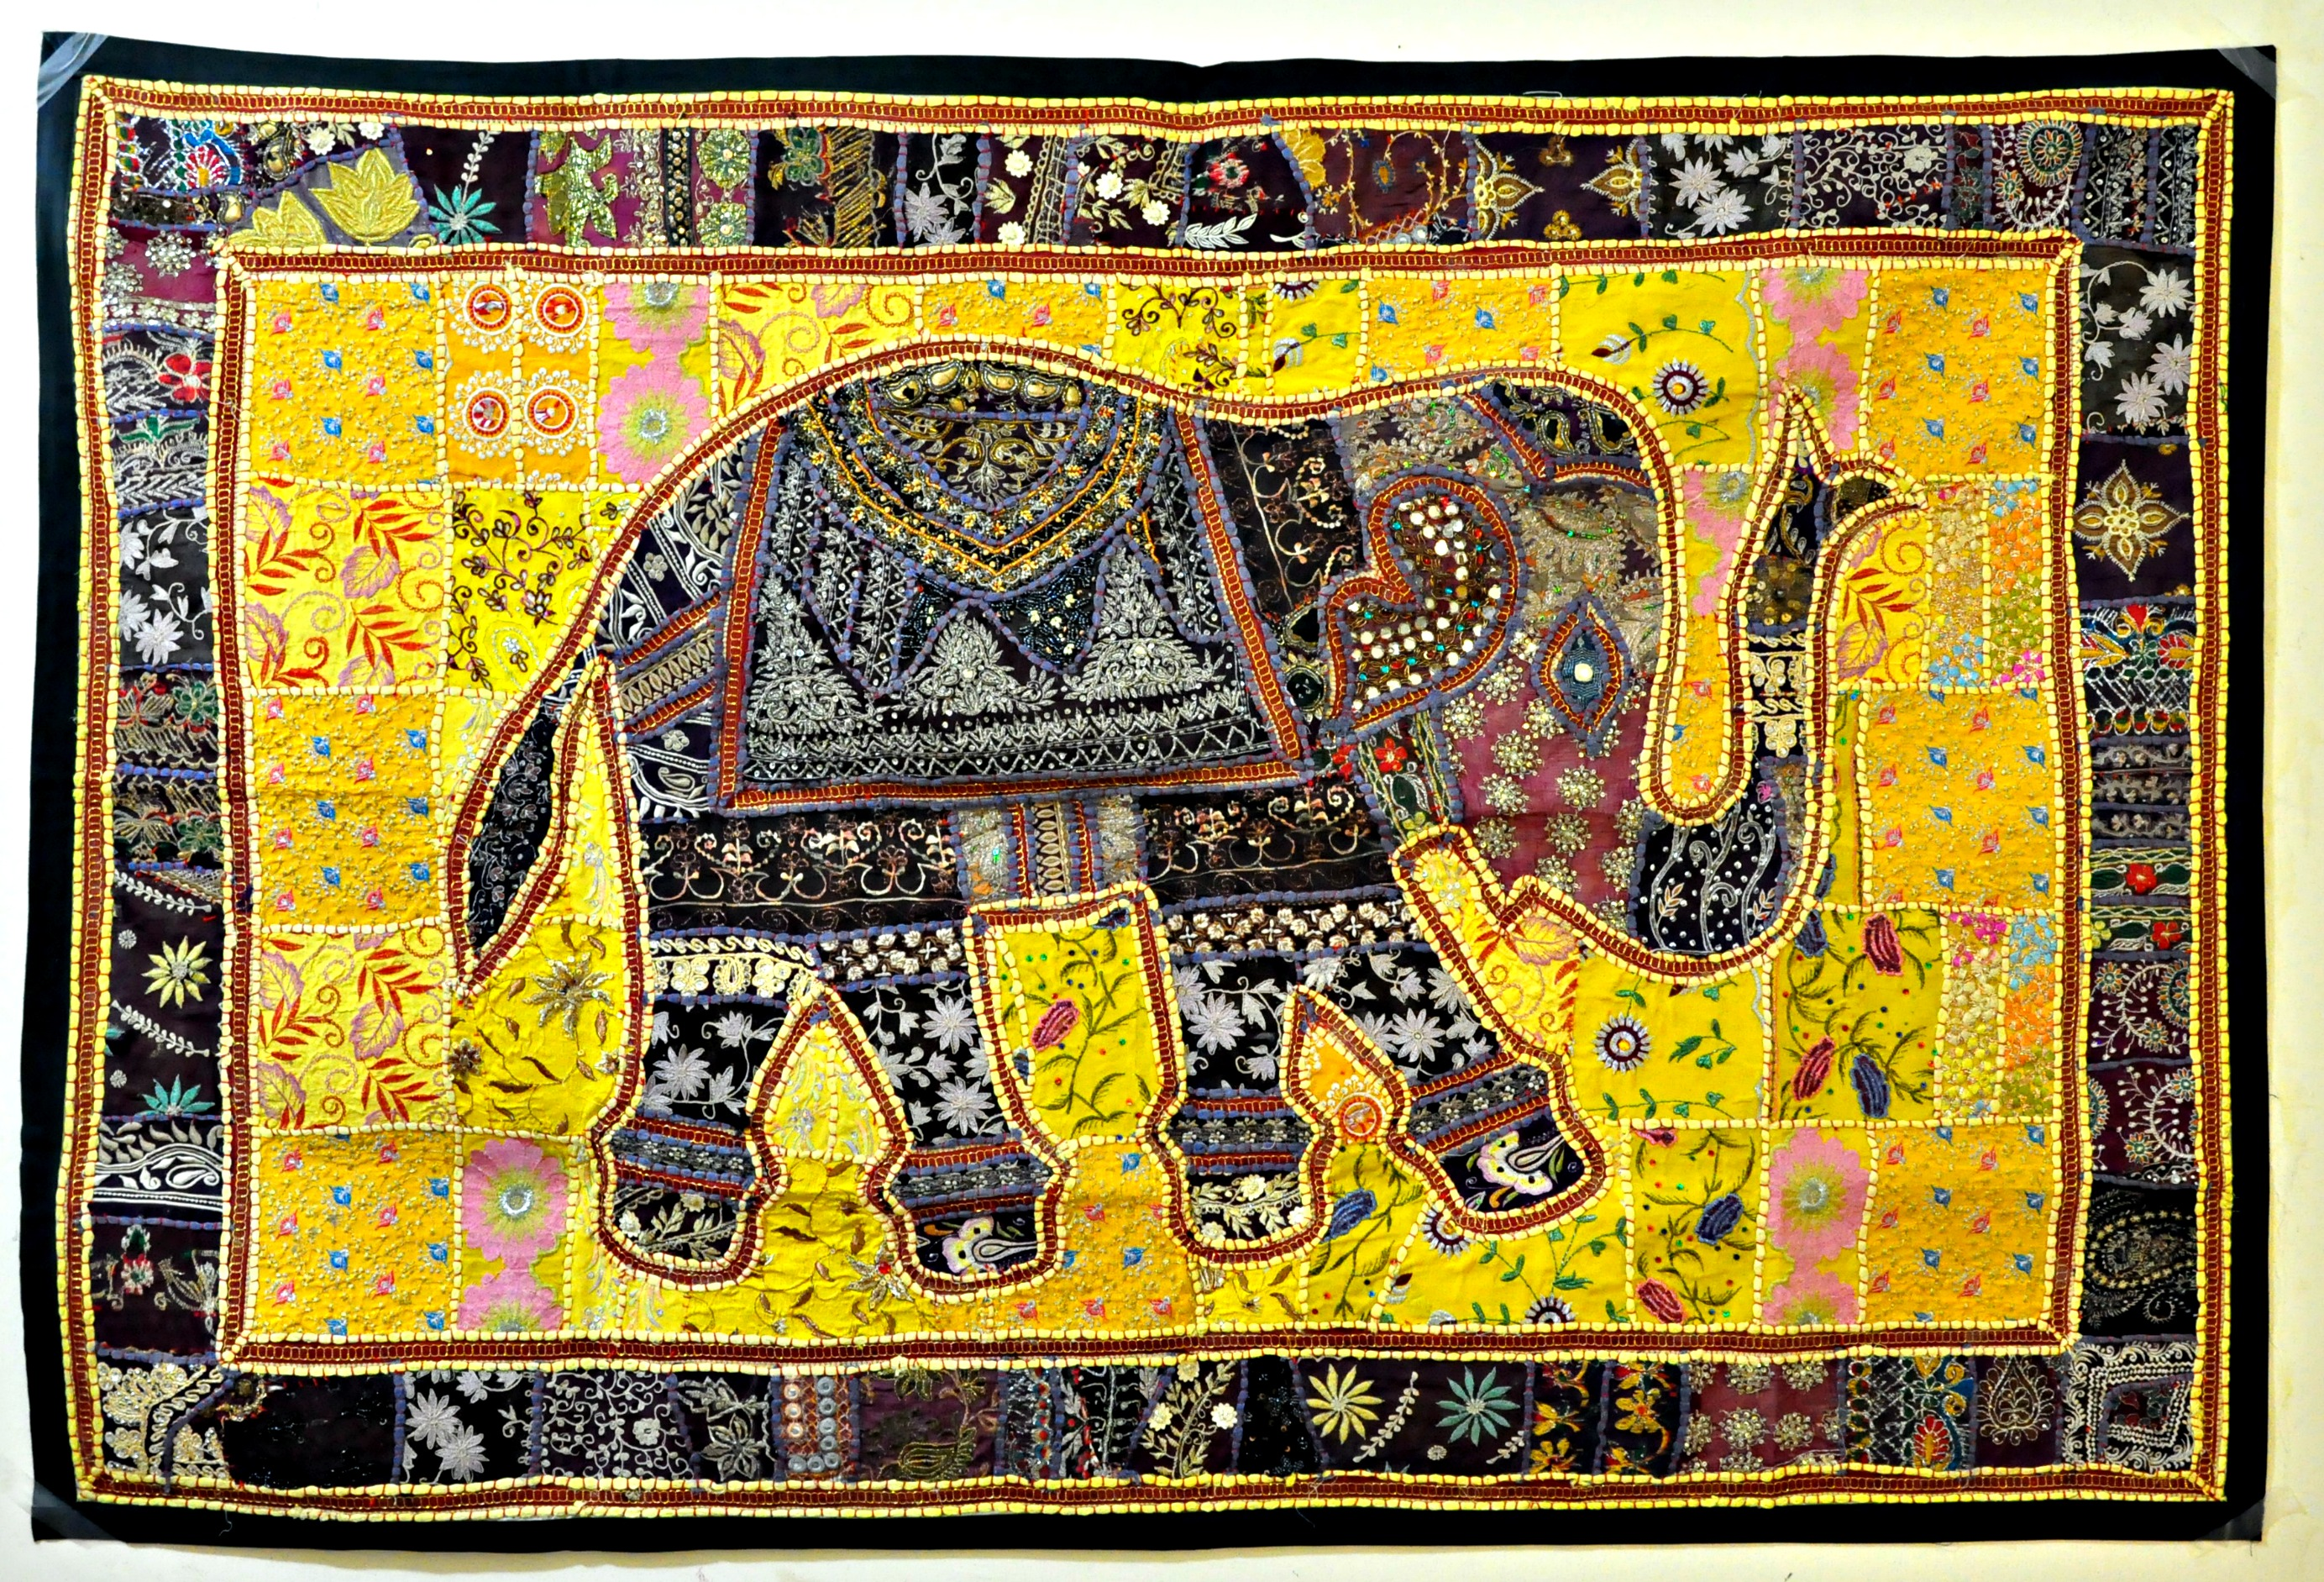 Indian Vintage Handmade Patchwork Tapestry Wall Hanging  embroidered table runner Indian folk